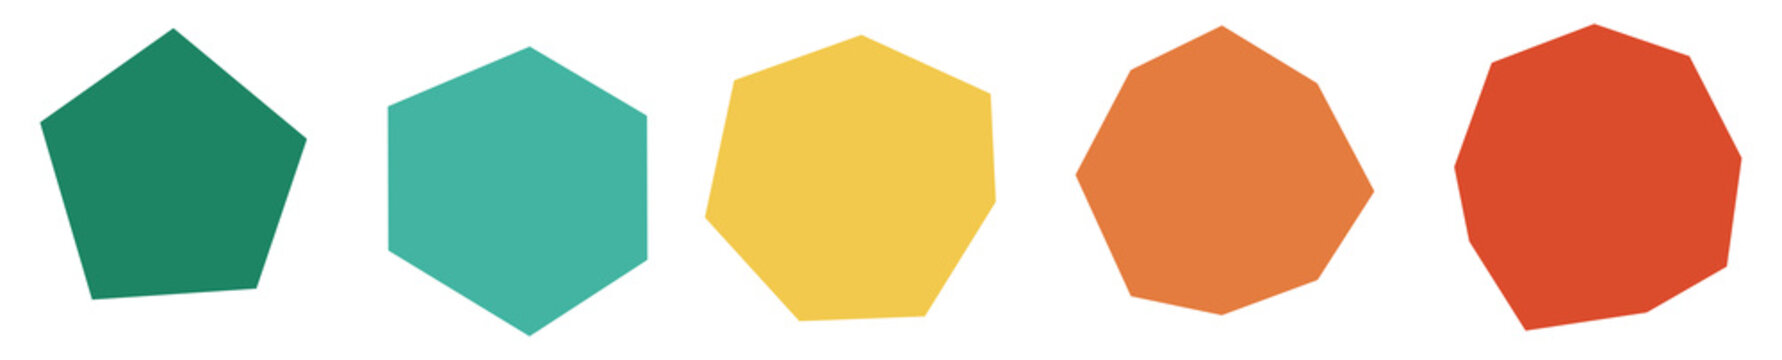 Set of imperfect / unequal polygons with 5 to 9 sides - pentagon, hexagon, heptagon, octagon, nonagon, not all sides or angles equal, icons with different colors